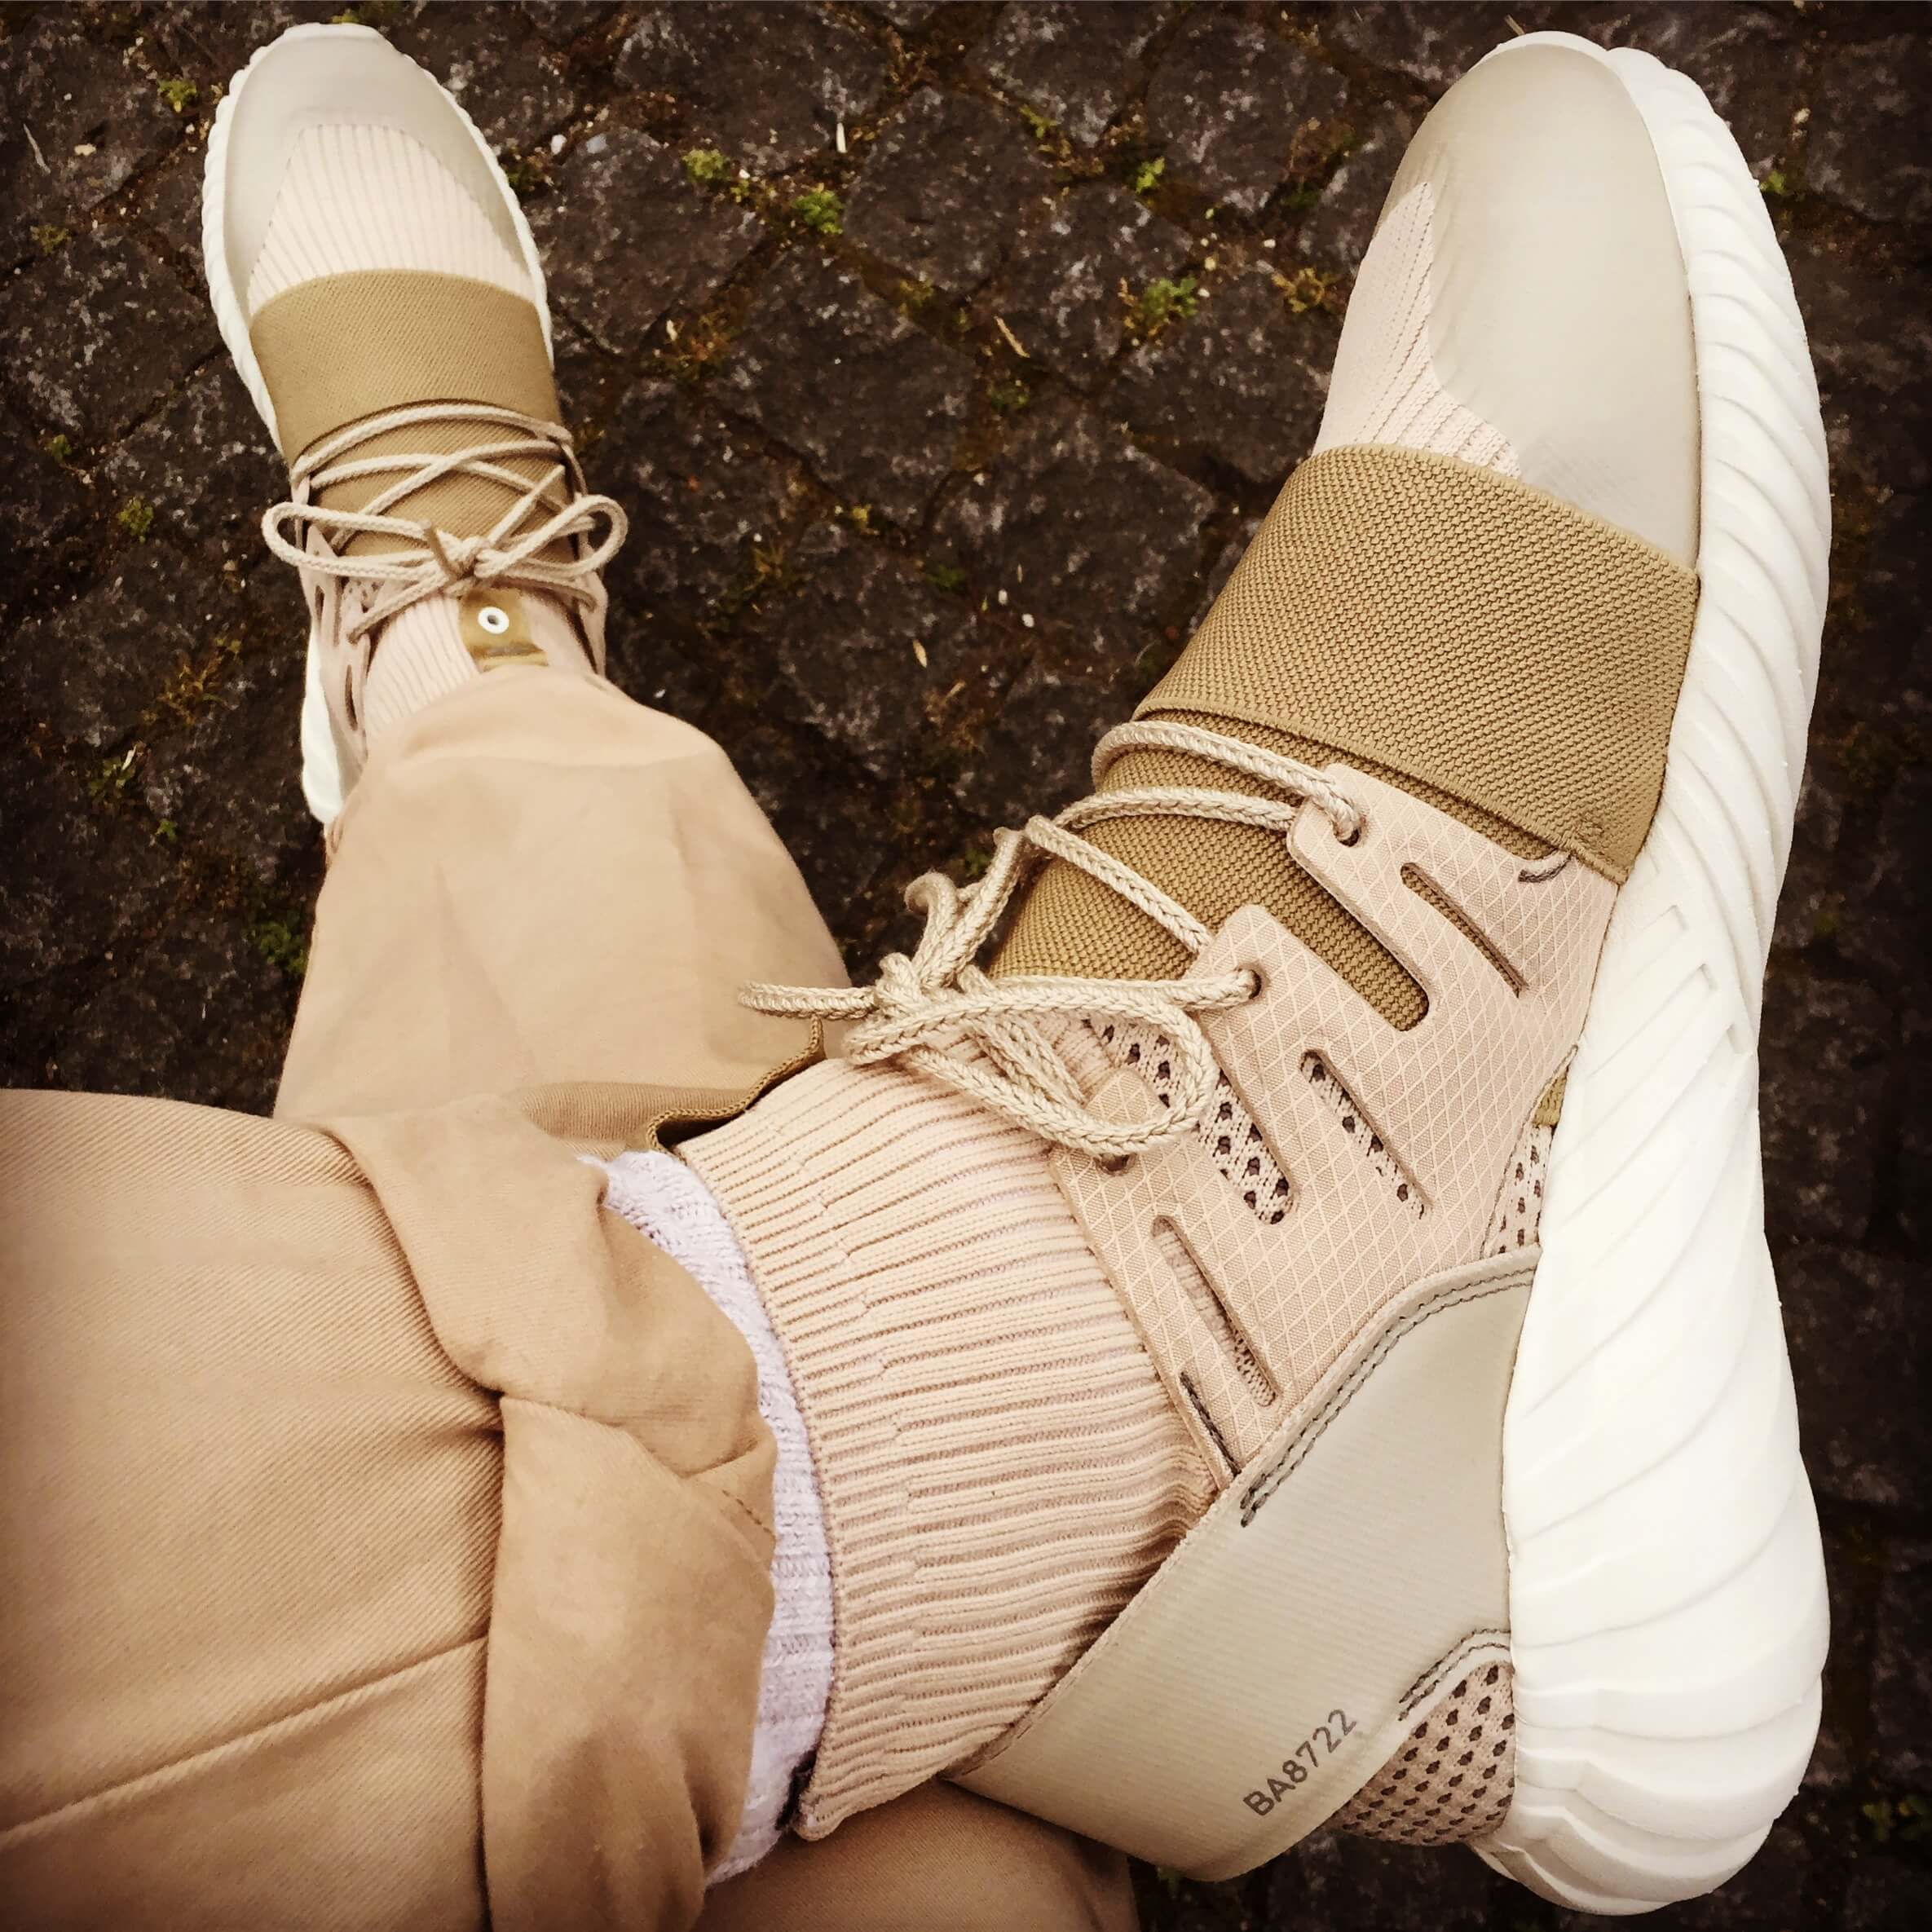 Adidas-Tubular-Doom-Special-Forces-Top-View-Benstah-Onfeet